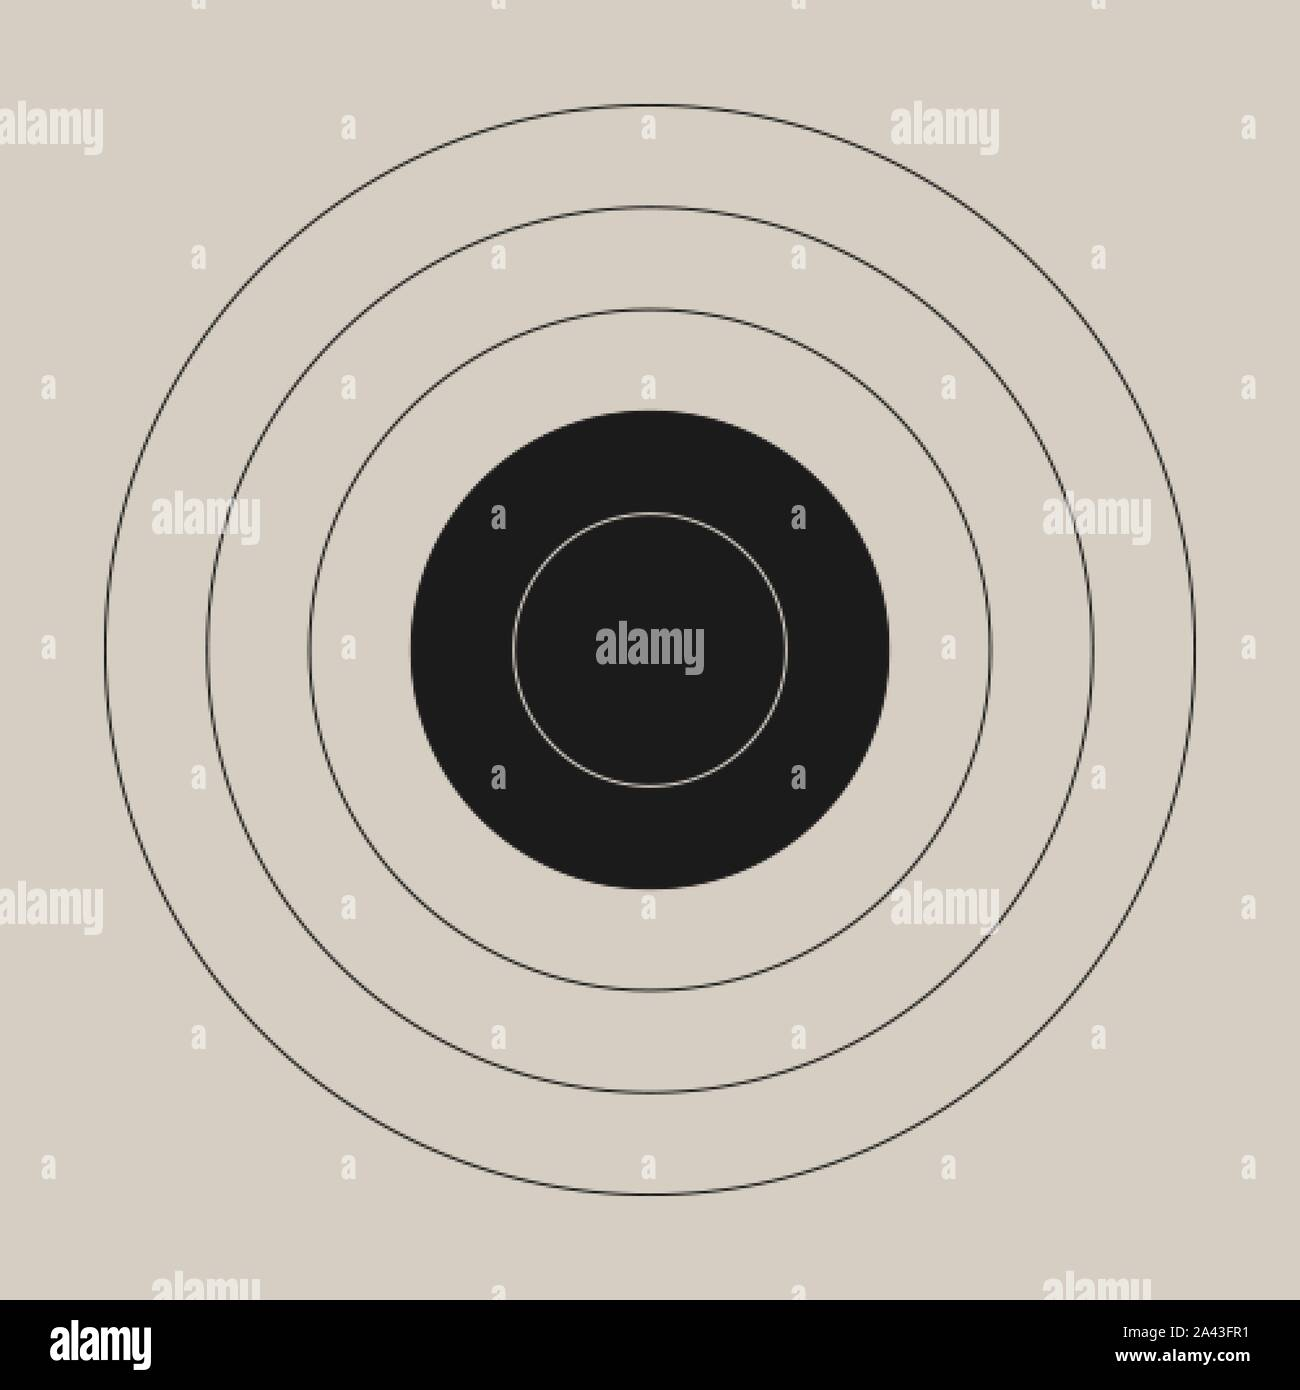 Vintage template of the round shooting target for a gun range Stock Vector